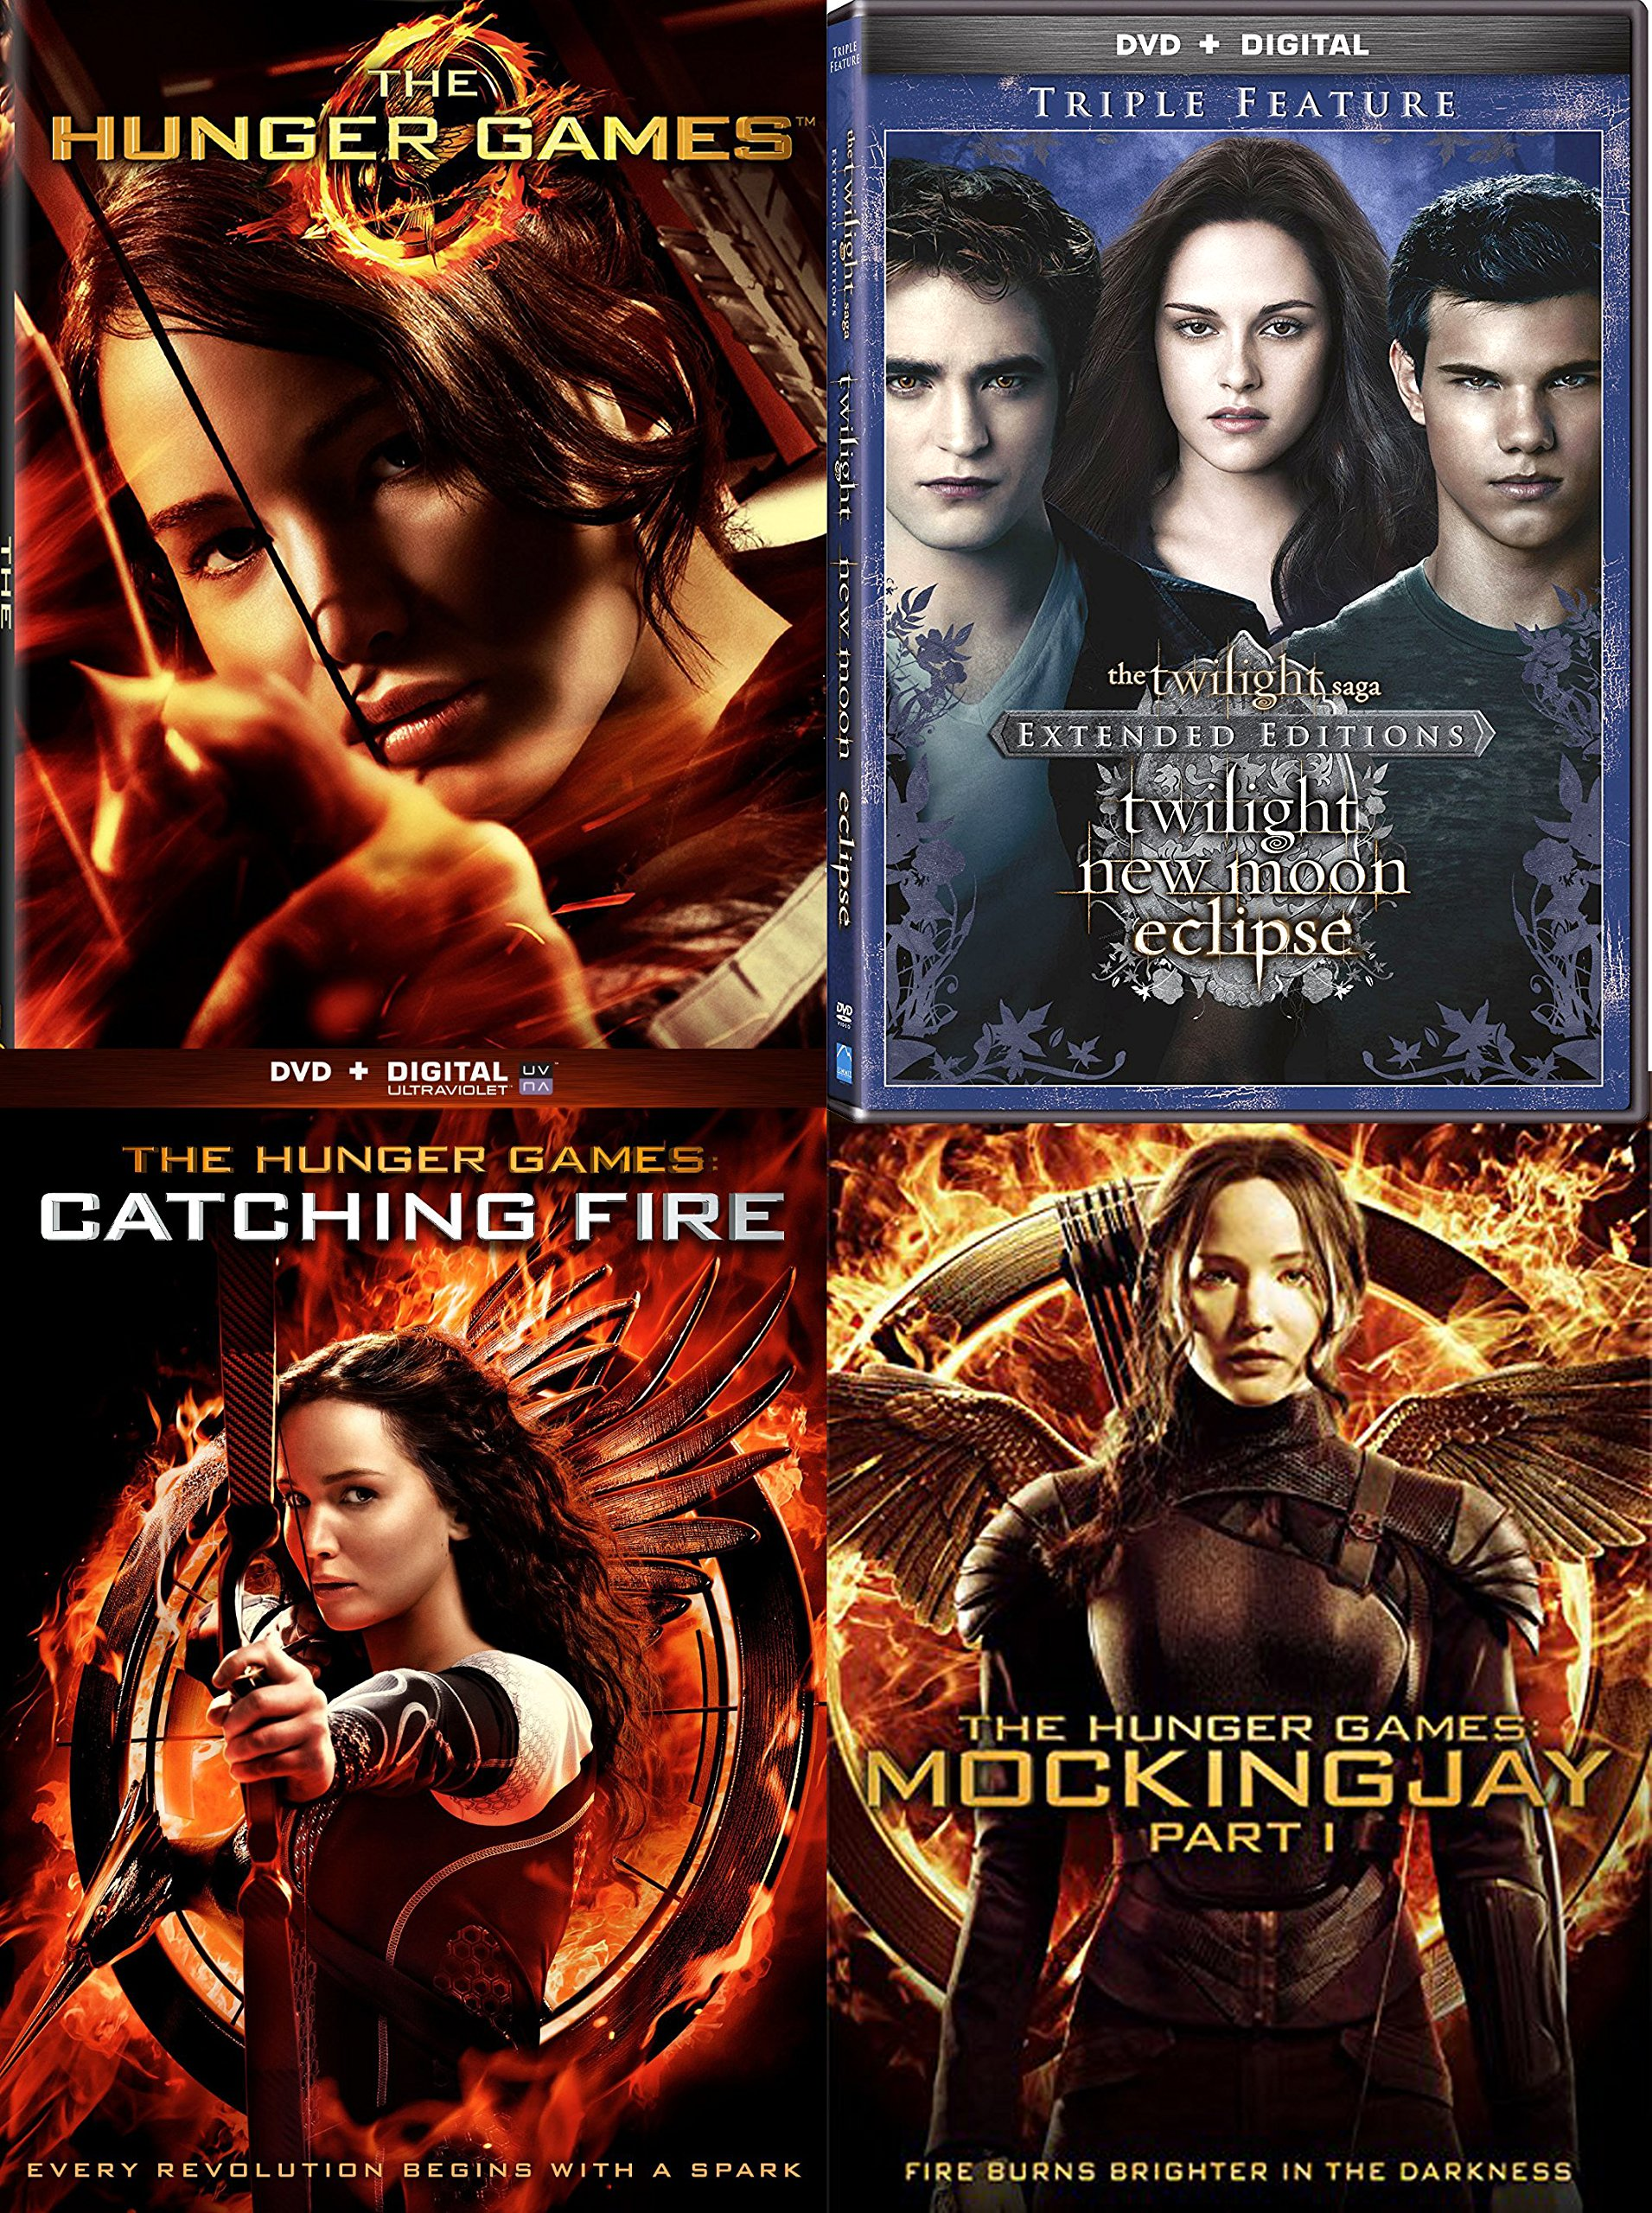 The Twilight Saga: Extended Edition Triple Feature New Moon / Eclipse DVD + The HUNGER GAMES Series 3 Movie Saga Catching Fire & Mockingjay pt.1 - 6 Disc collection by Lionsgate